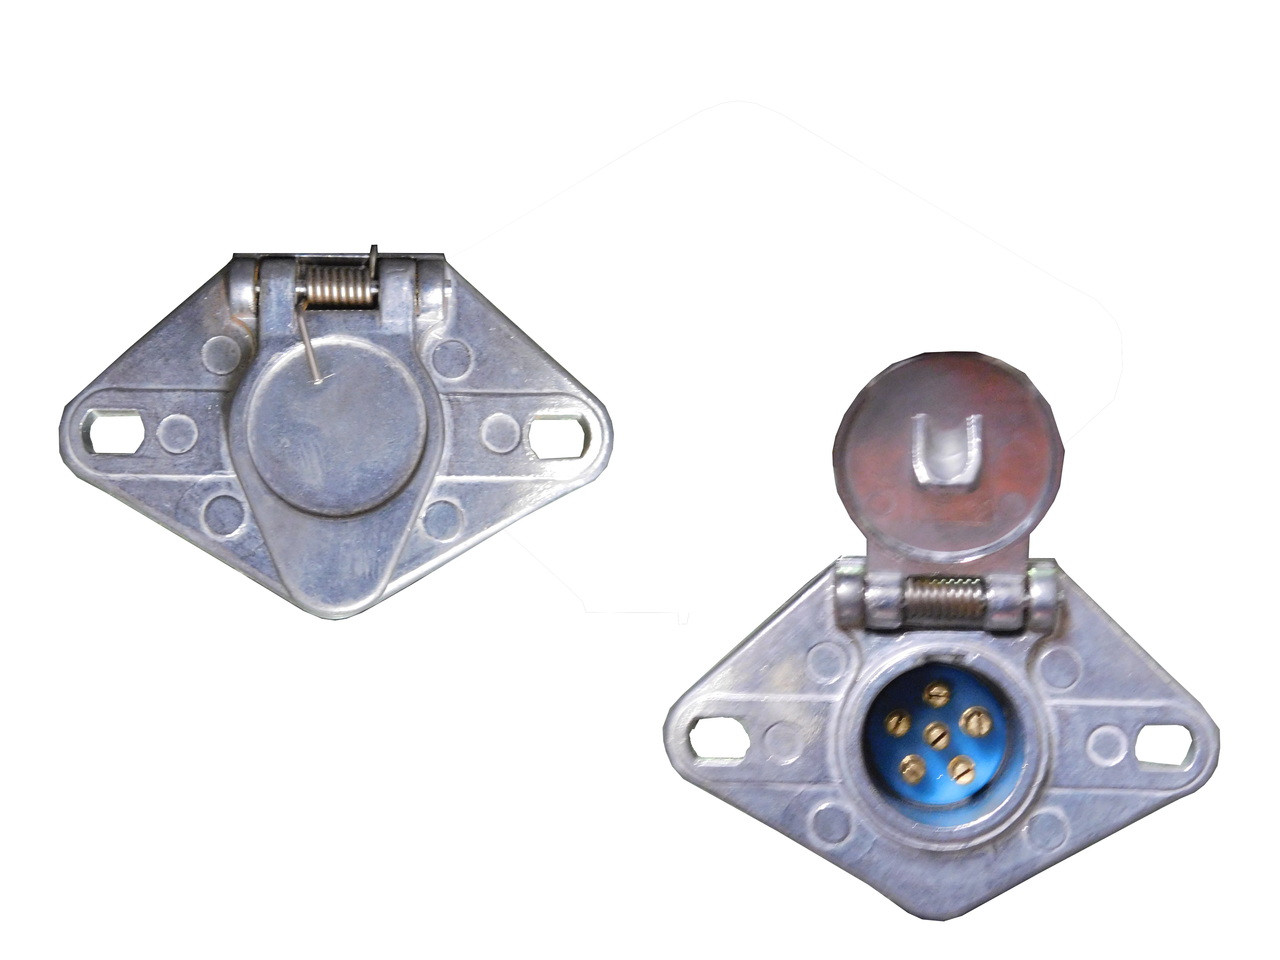 hight resolution of clearance 6 pin round trailer connector female price 8 99 image 1